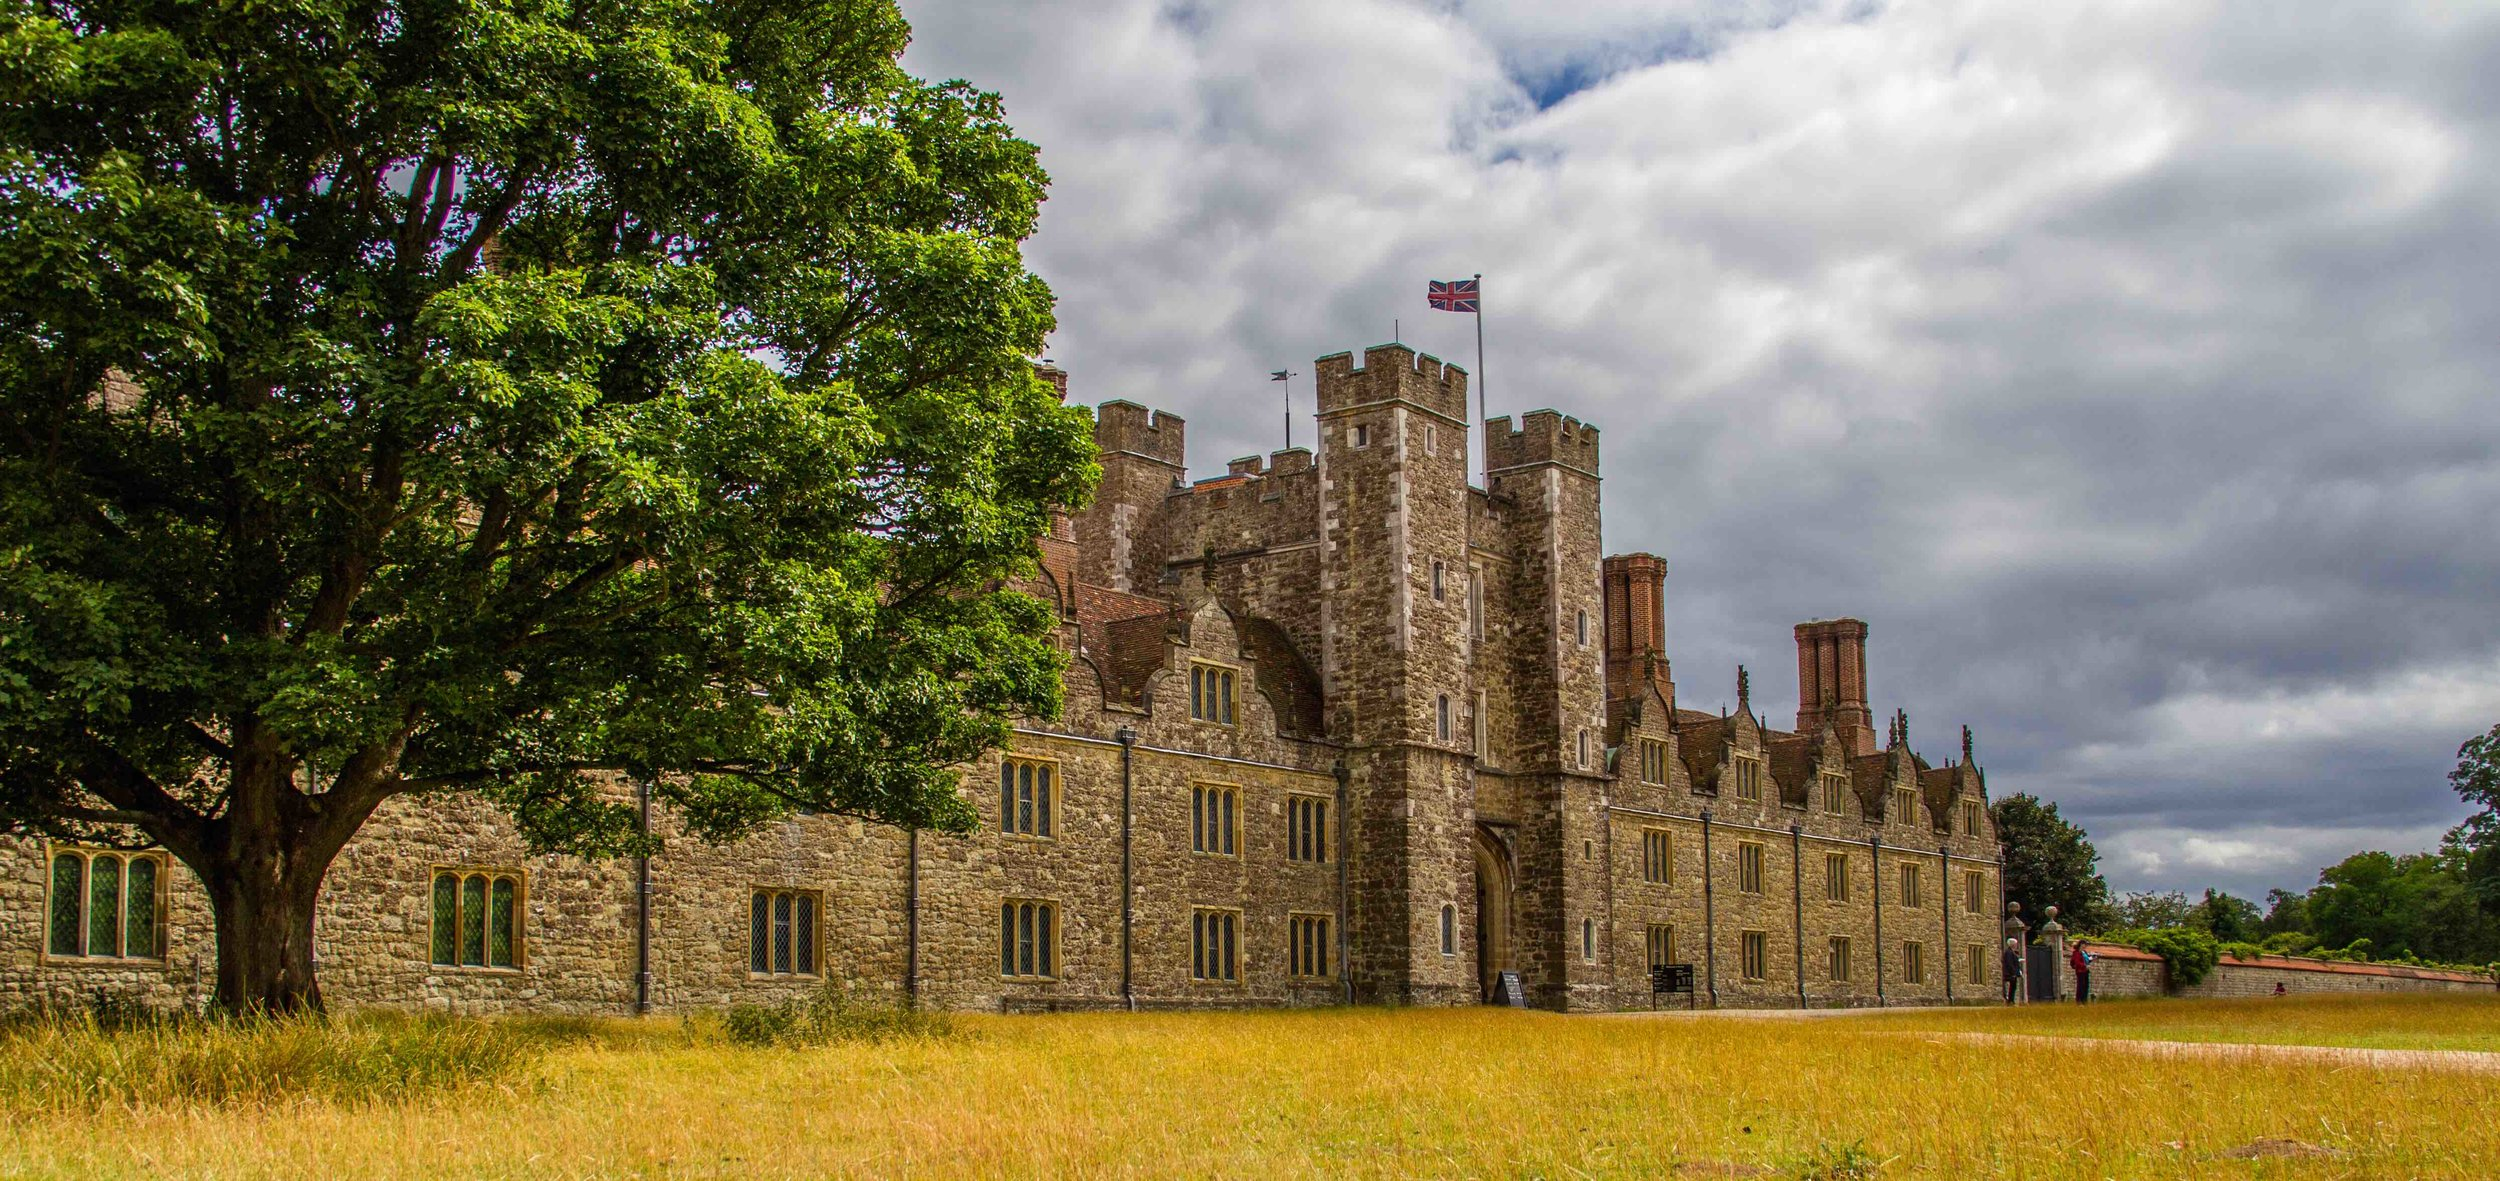 Knole House, National Trust